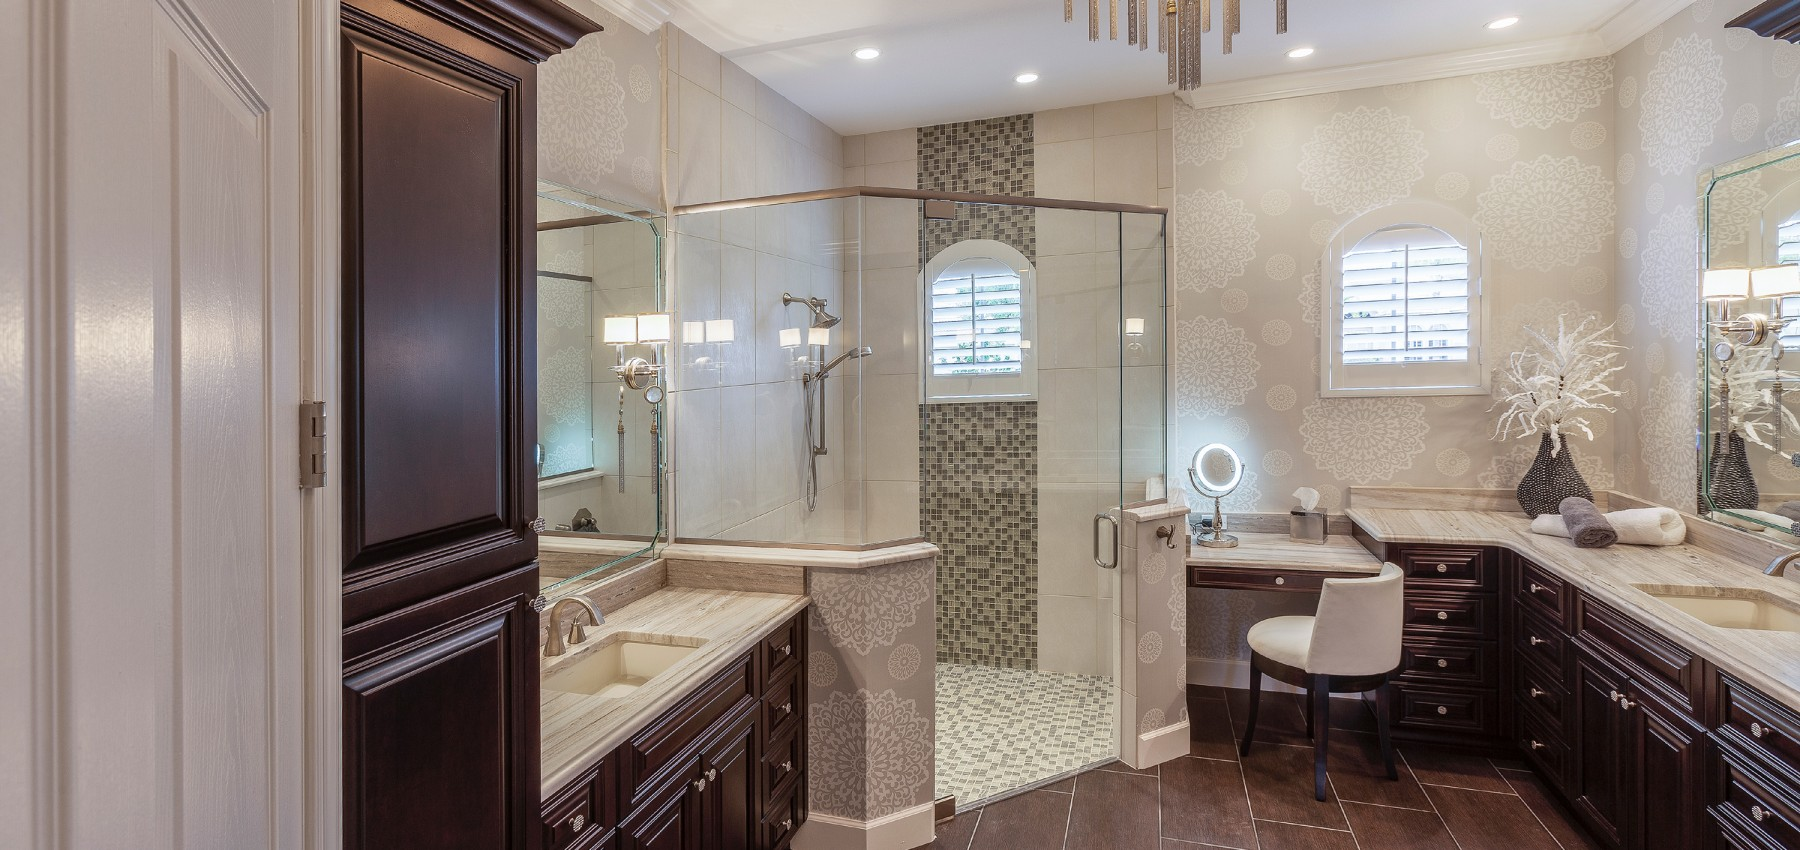 Bathroom Remodeling KGT Remodeling - Quality advantage bathroom remodeling